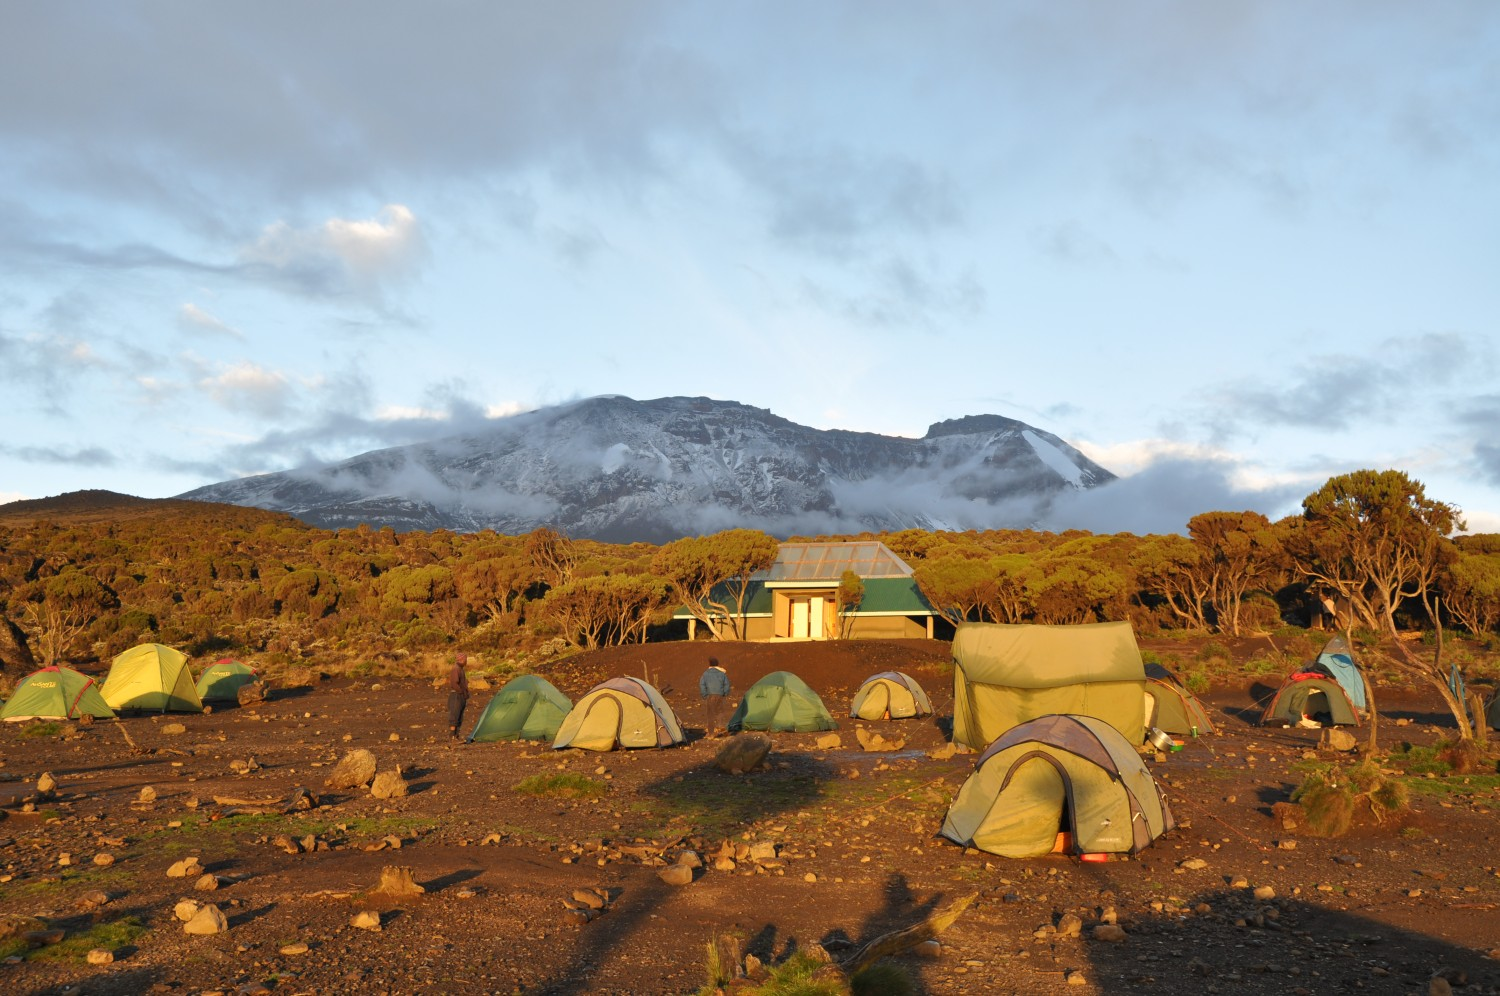 Shira camp and Kibo Peak